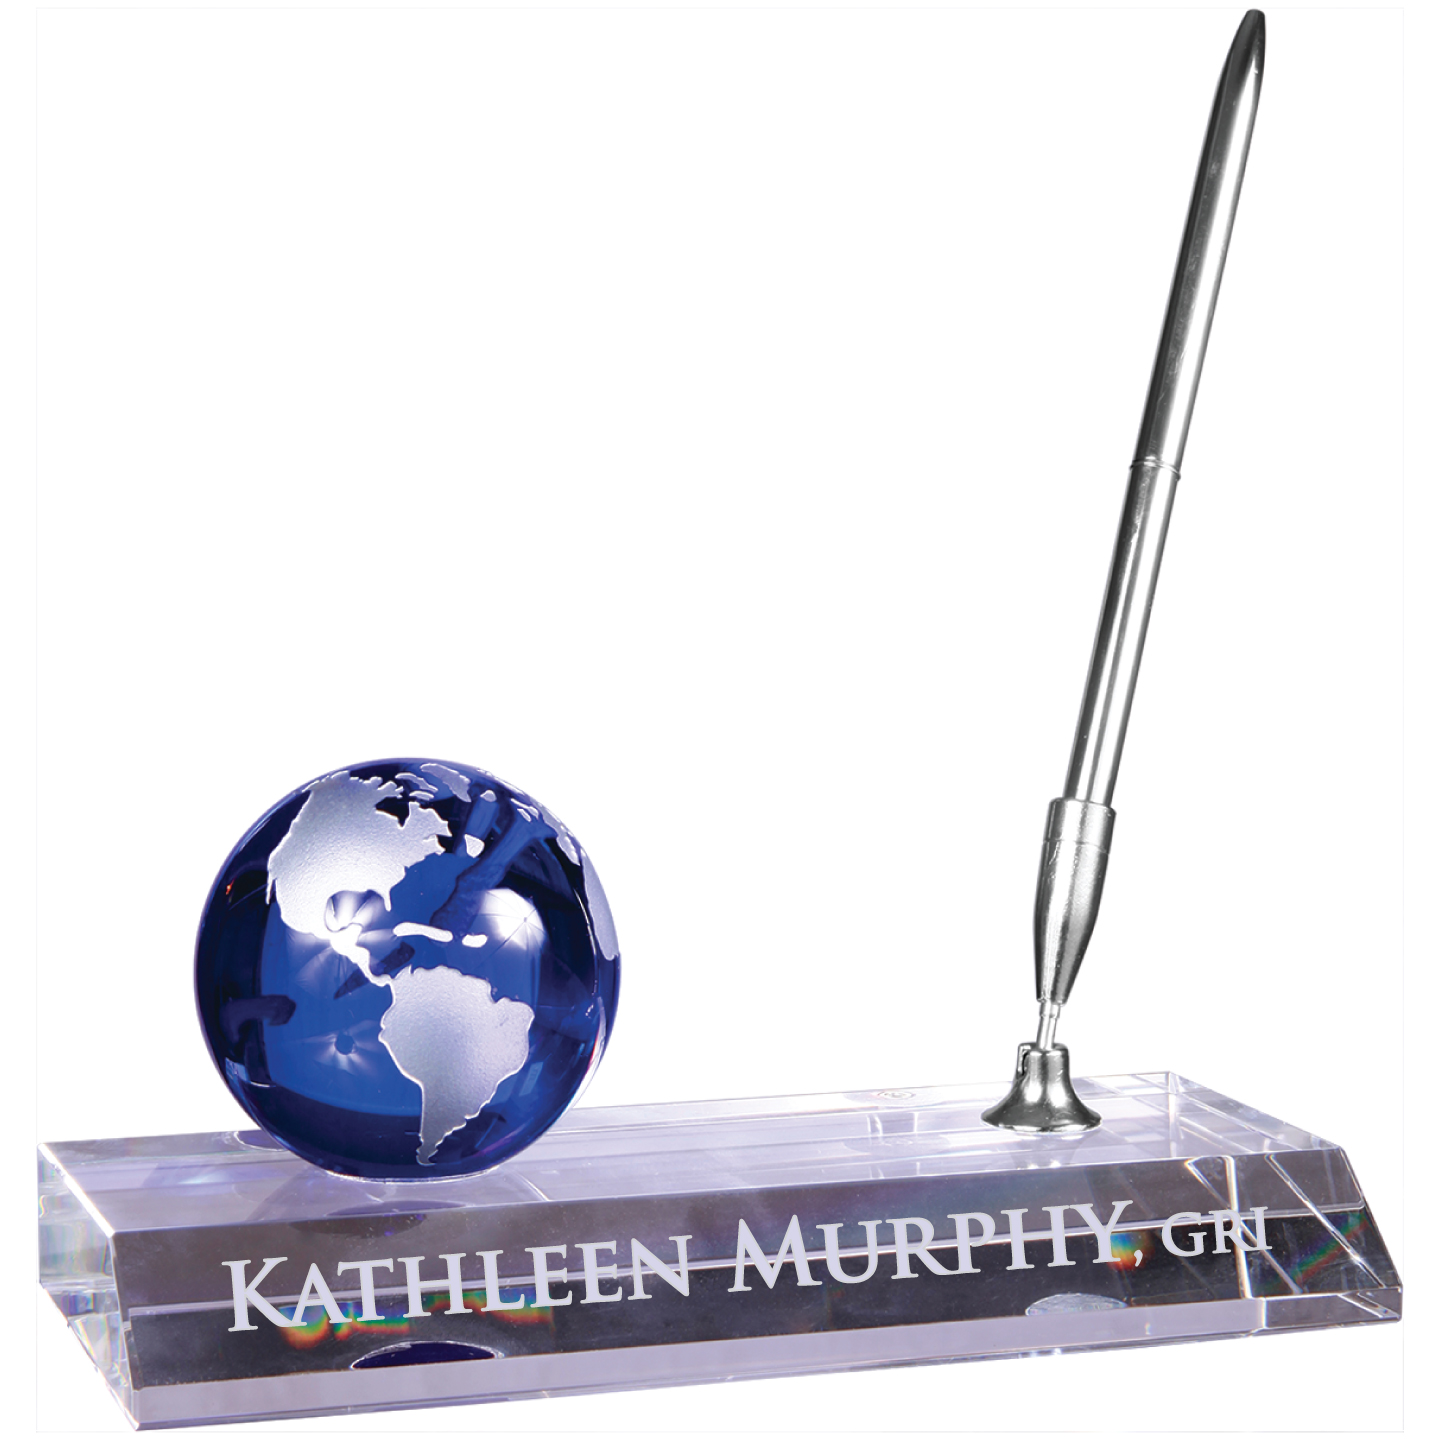 Crystal Name Base with Pen Nameplates, Desks, Wedges, Names, Plates, Badges, DeskWedges, Desk